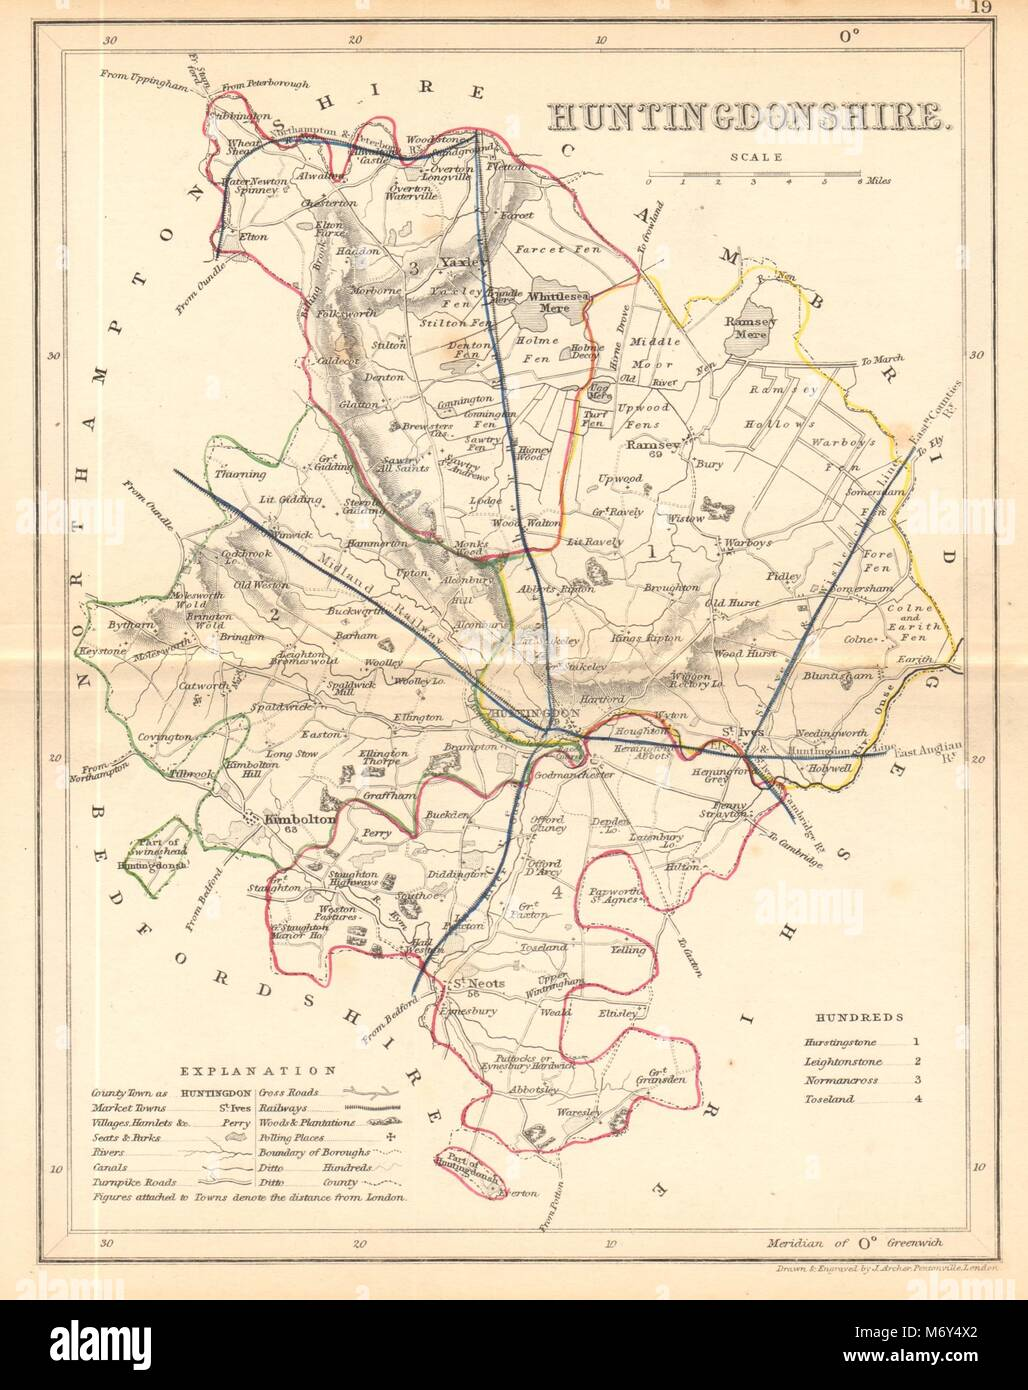 Beautiful Hertfordshire County Map By Archer & Dugdale Art Seats Canals Polling Places 1845